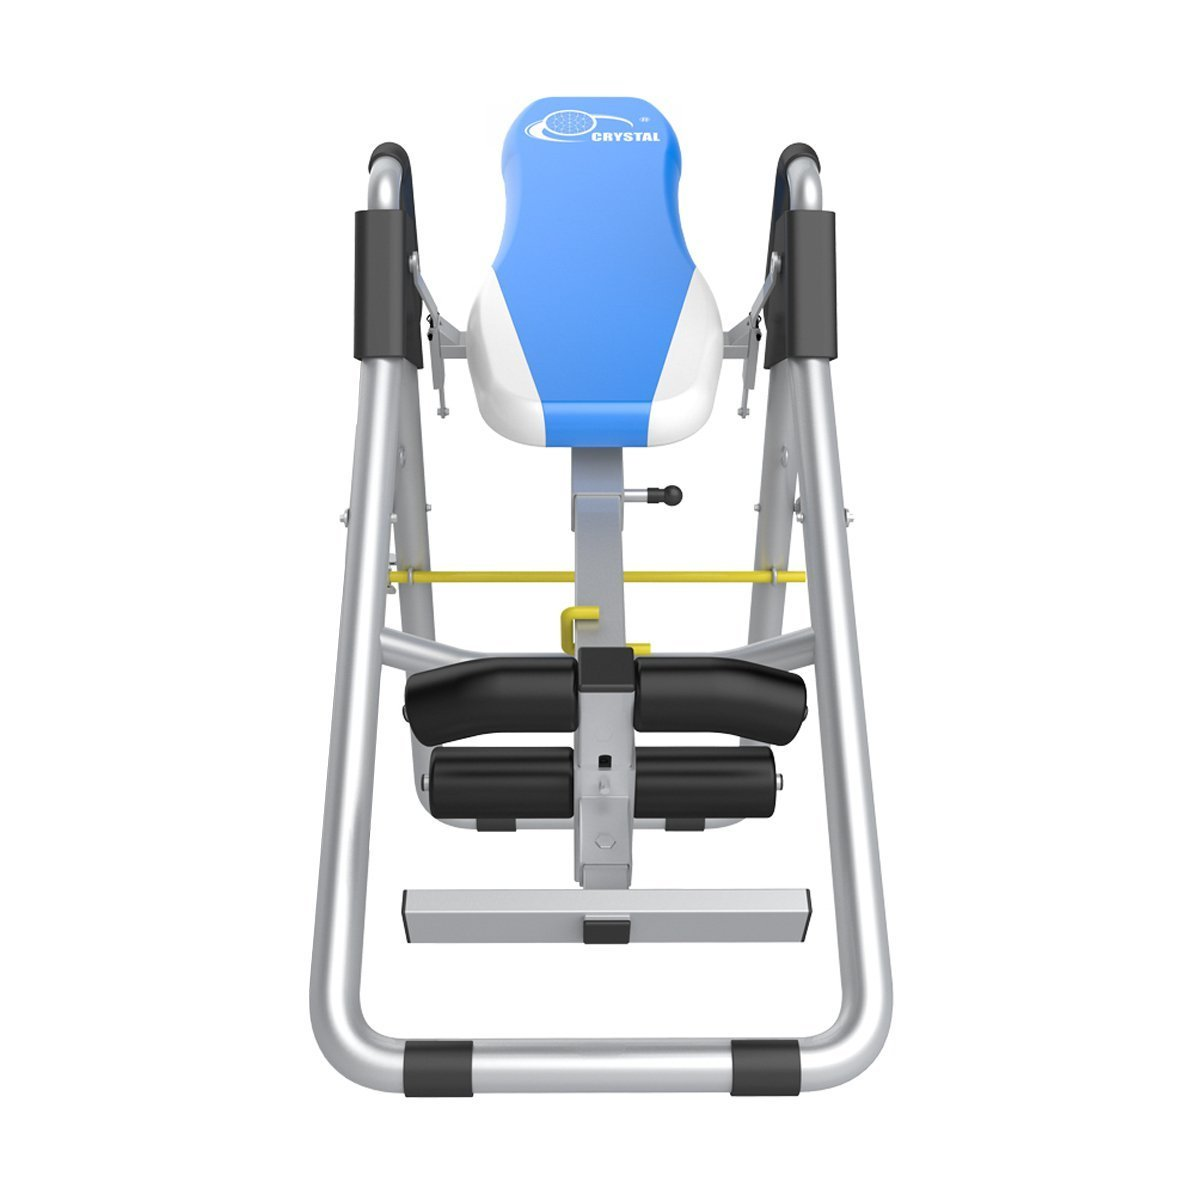 Inversion Therapy Tables for Back Pain Adjustable Therapy Table Foldable Fitness Equipment Back Pain Relief Gravity Inversion Tables for Home Use Sports Equipment-Blue